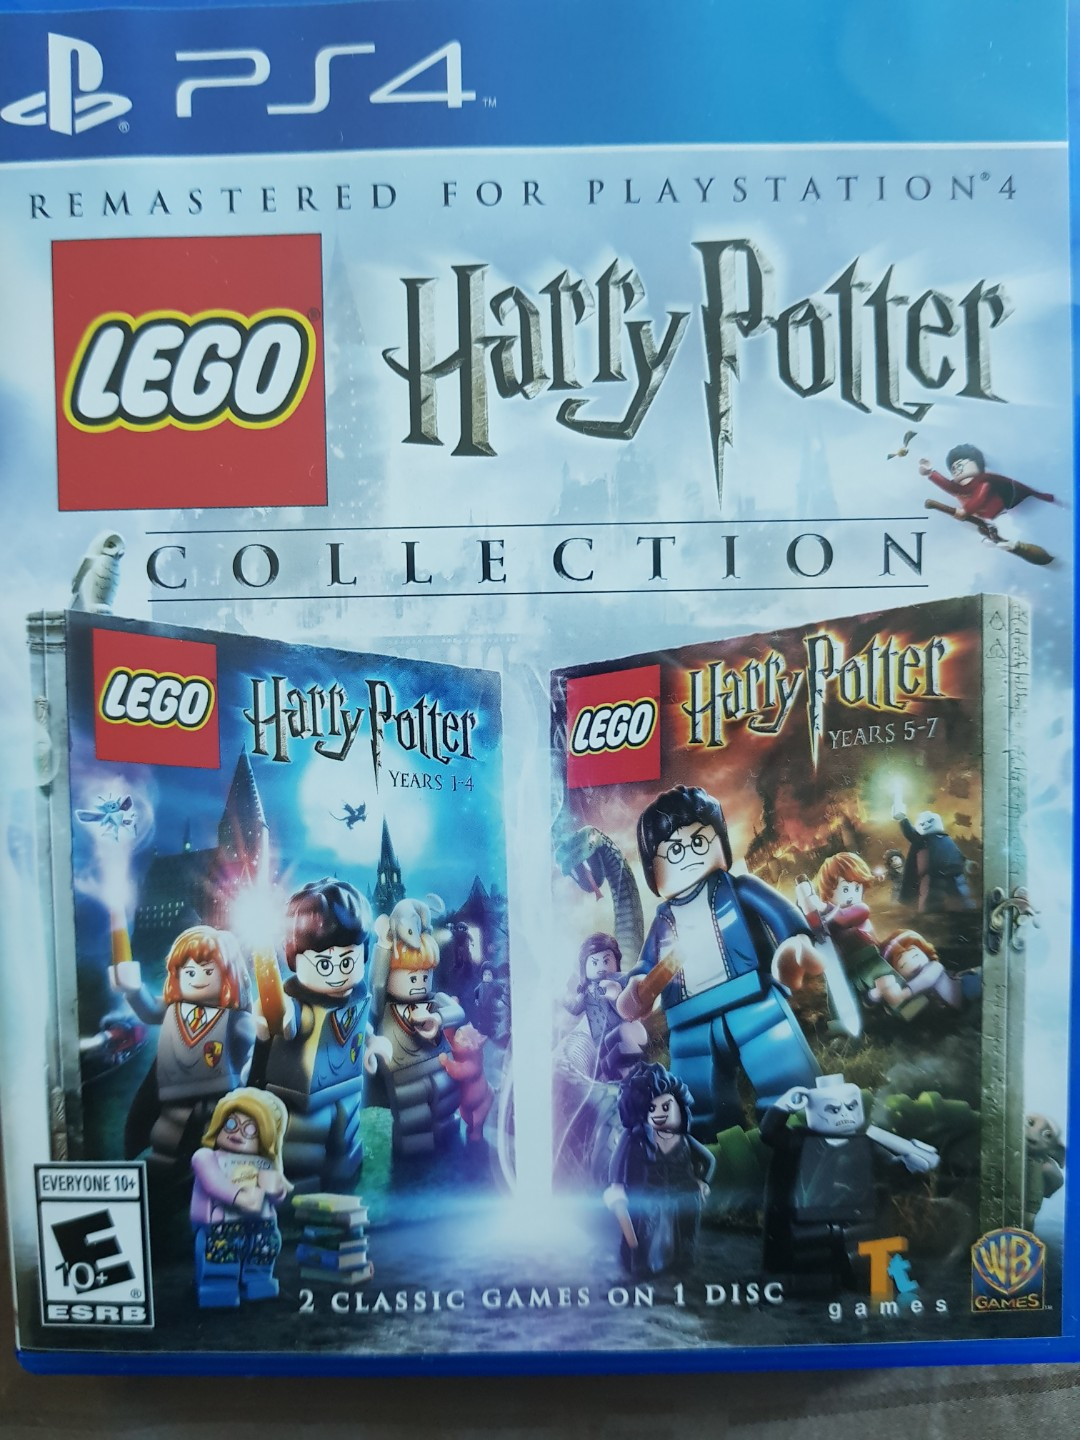 PS4 game Harry Potter